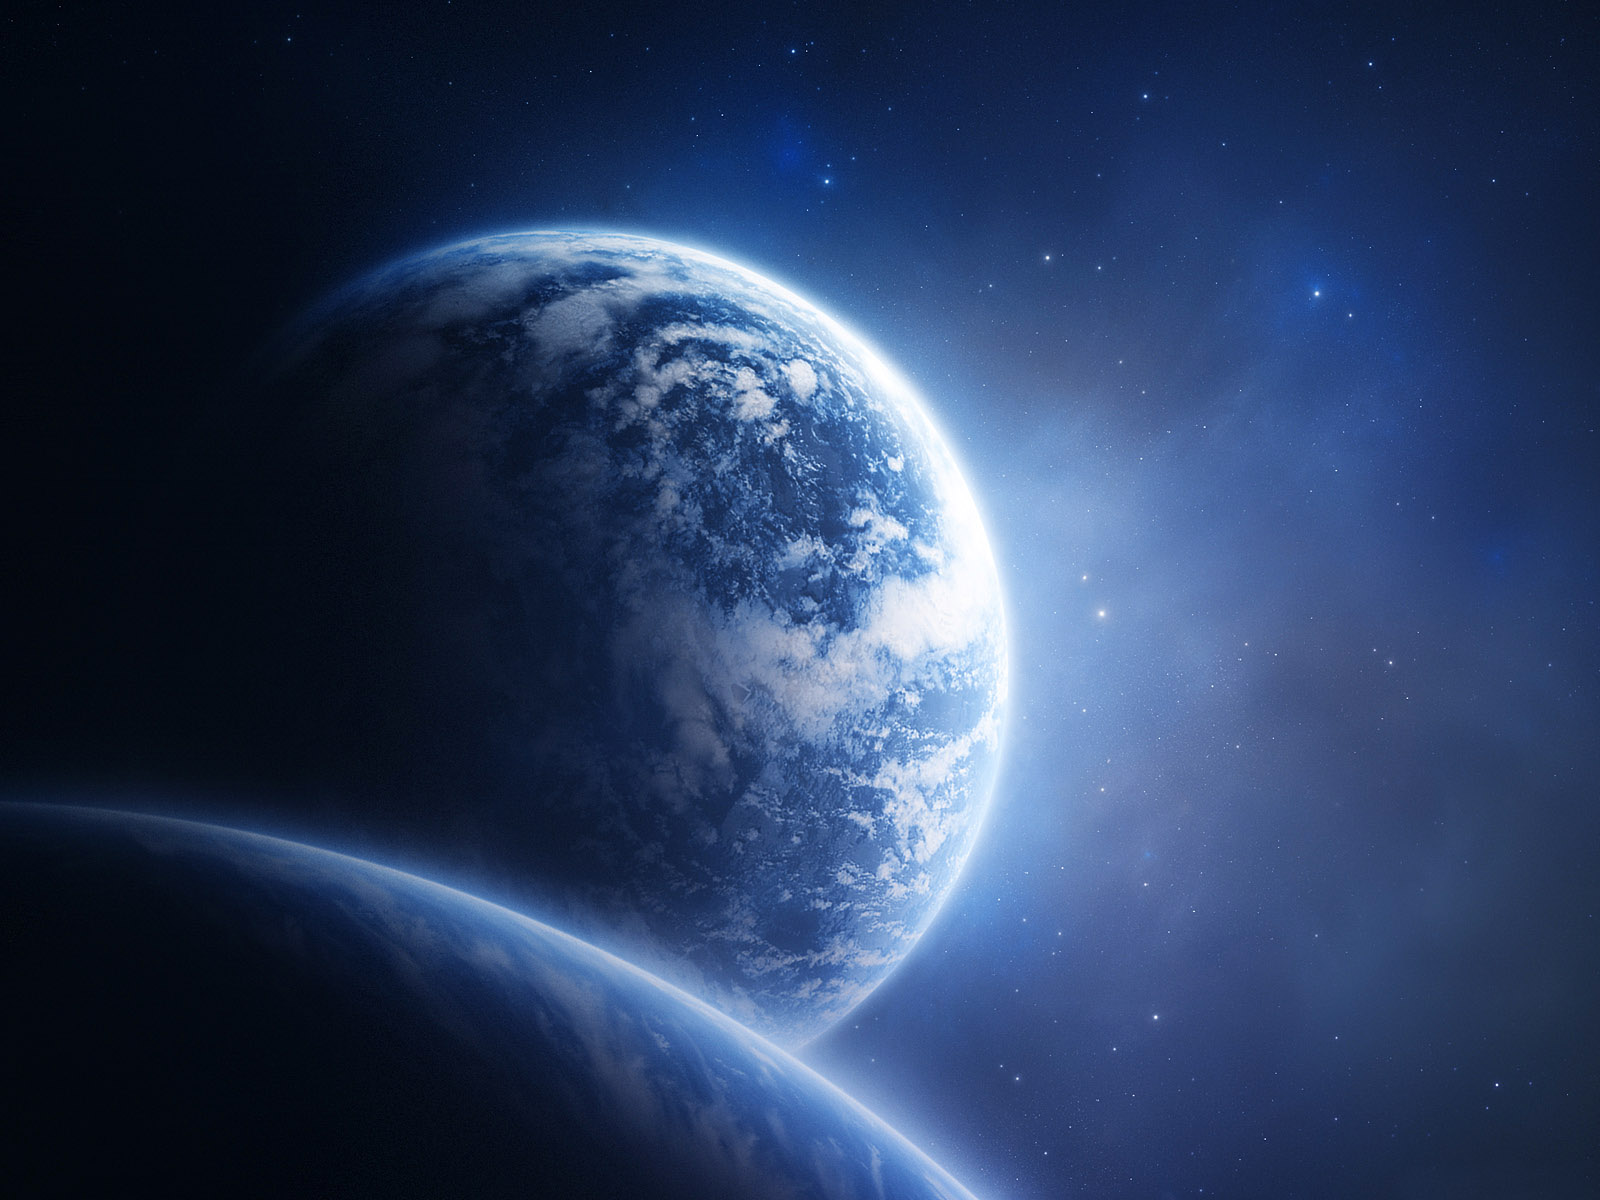 http://1.bp.blogspot.com/-zdclb0xt82I/TdrJctS1zlI/AAAAAAAAAI0/VALLn8yMk80/s1600/cosmic_inflation-normal-3D-Planets-Wallpapers.jpg